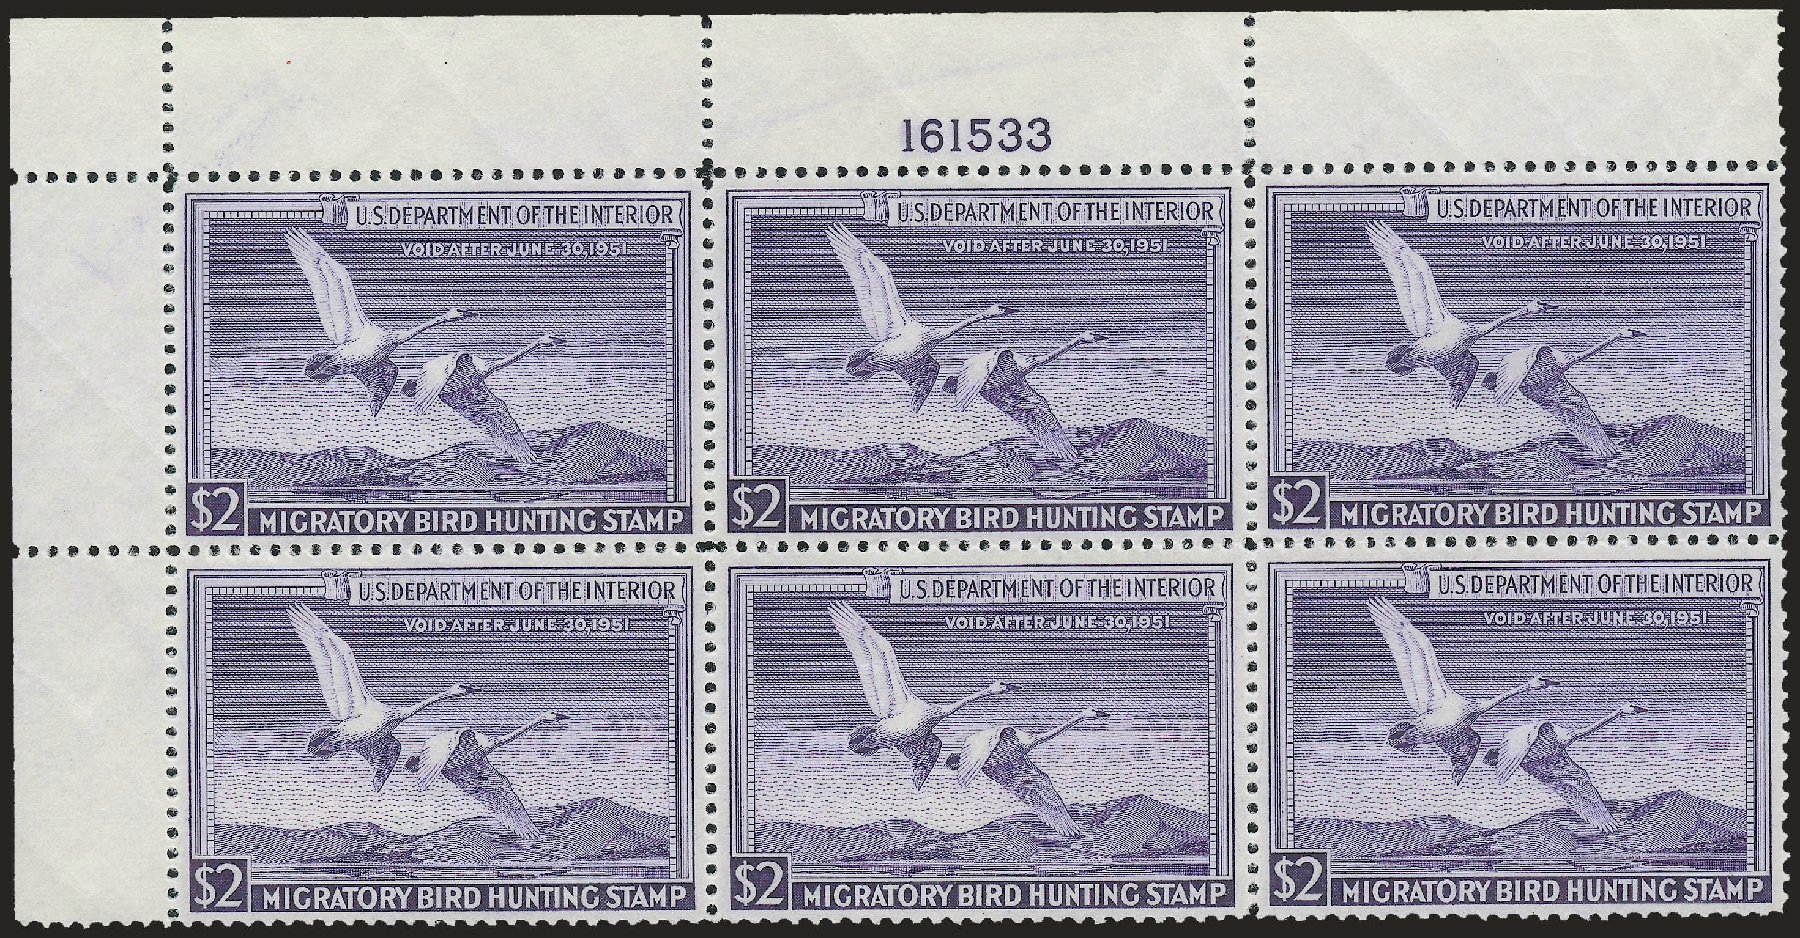 US Stamps Prices Scott Catalogue RW17 - US$2.00 1950 Federal Duck Hunting. Robert Siegel Auction Galleries, Dec 2008, Sale 967, Lot 5360